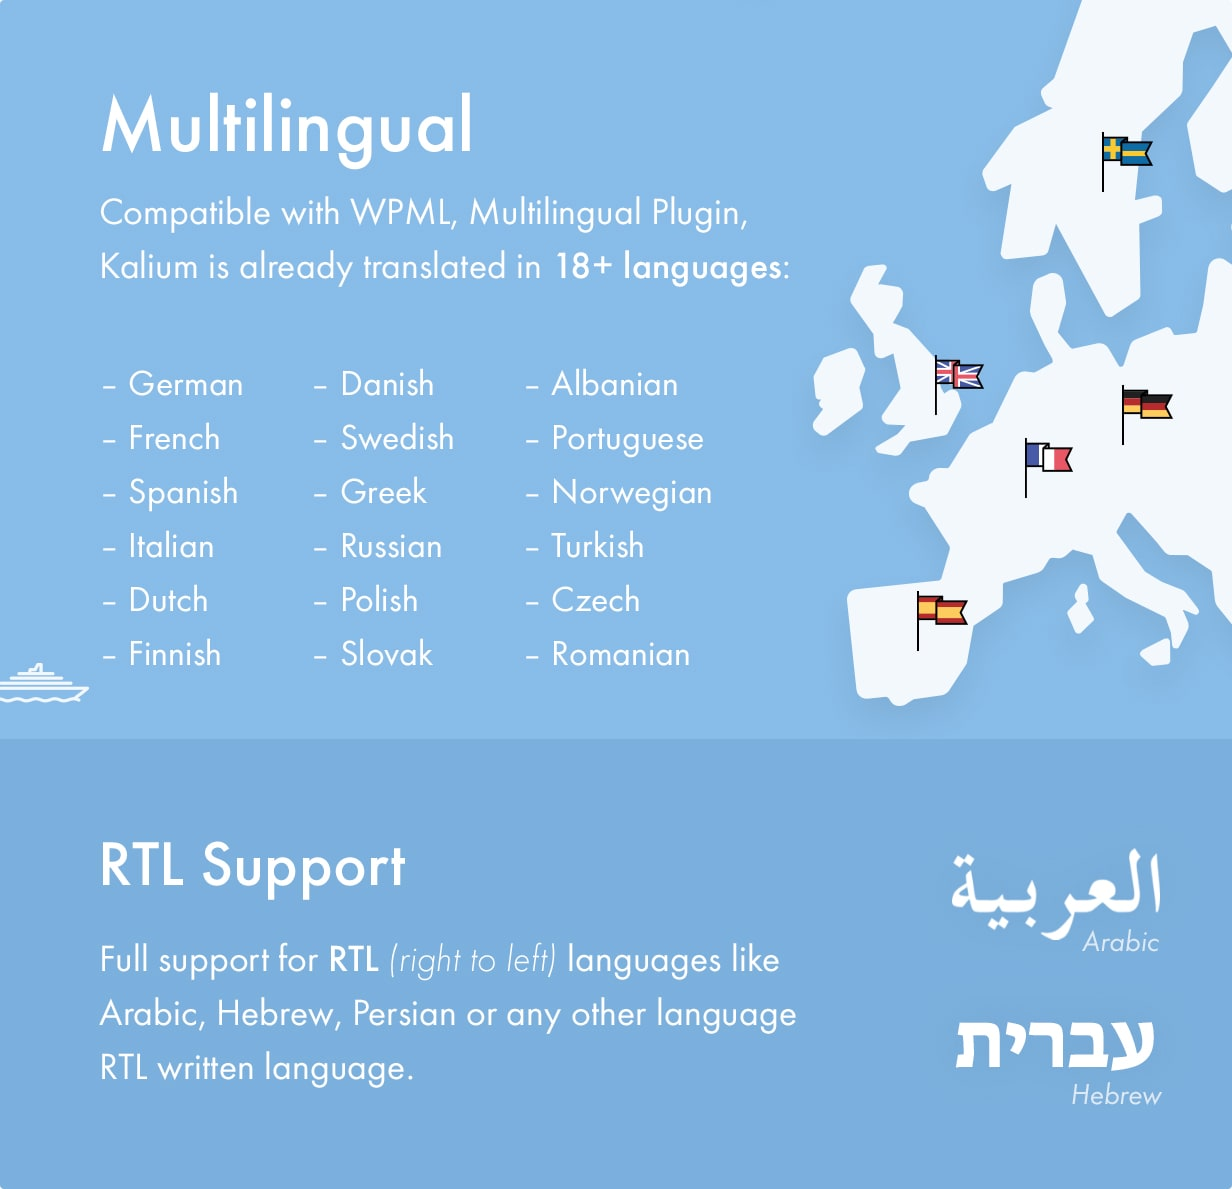 Multilingual and RTL Support